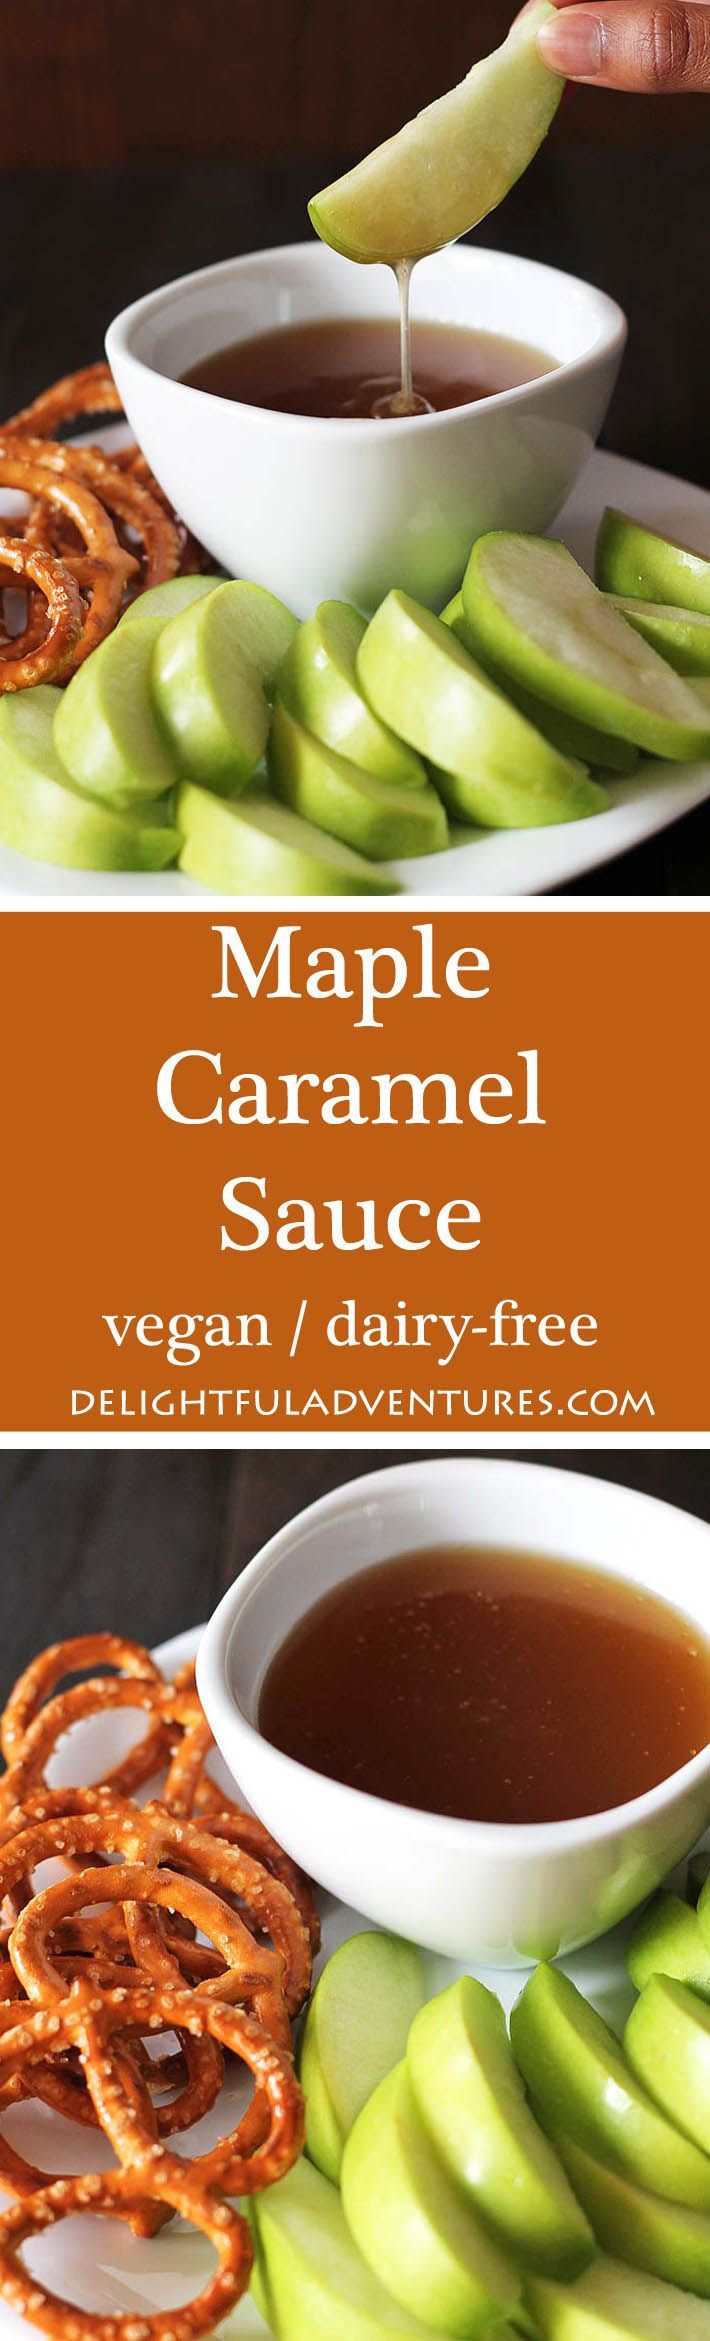 A quick, easy, and decadent maple caramel sauce that you'll want to put on everything from ice cream, sticky toffee pudding, pancakes, waffles and more! #vegancaramelsauce #dairyfreecaramelsauce #maplecaramelsauce #vegancaramel #veganglutenfree via @delighfuladv